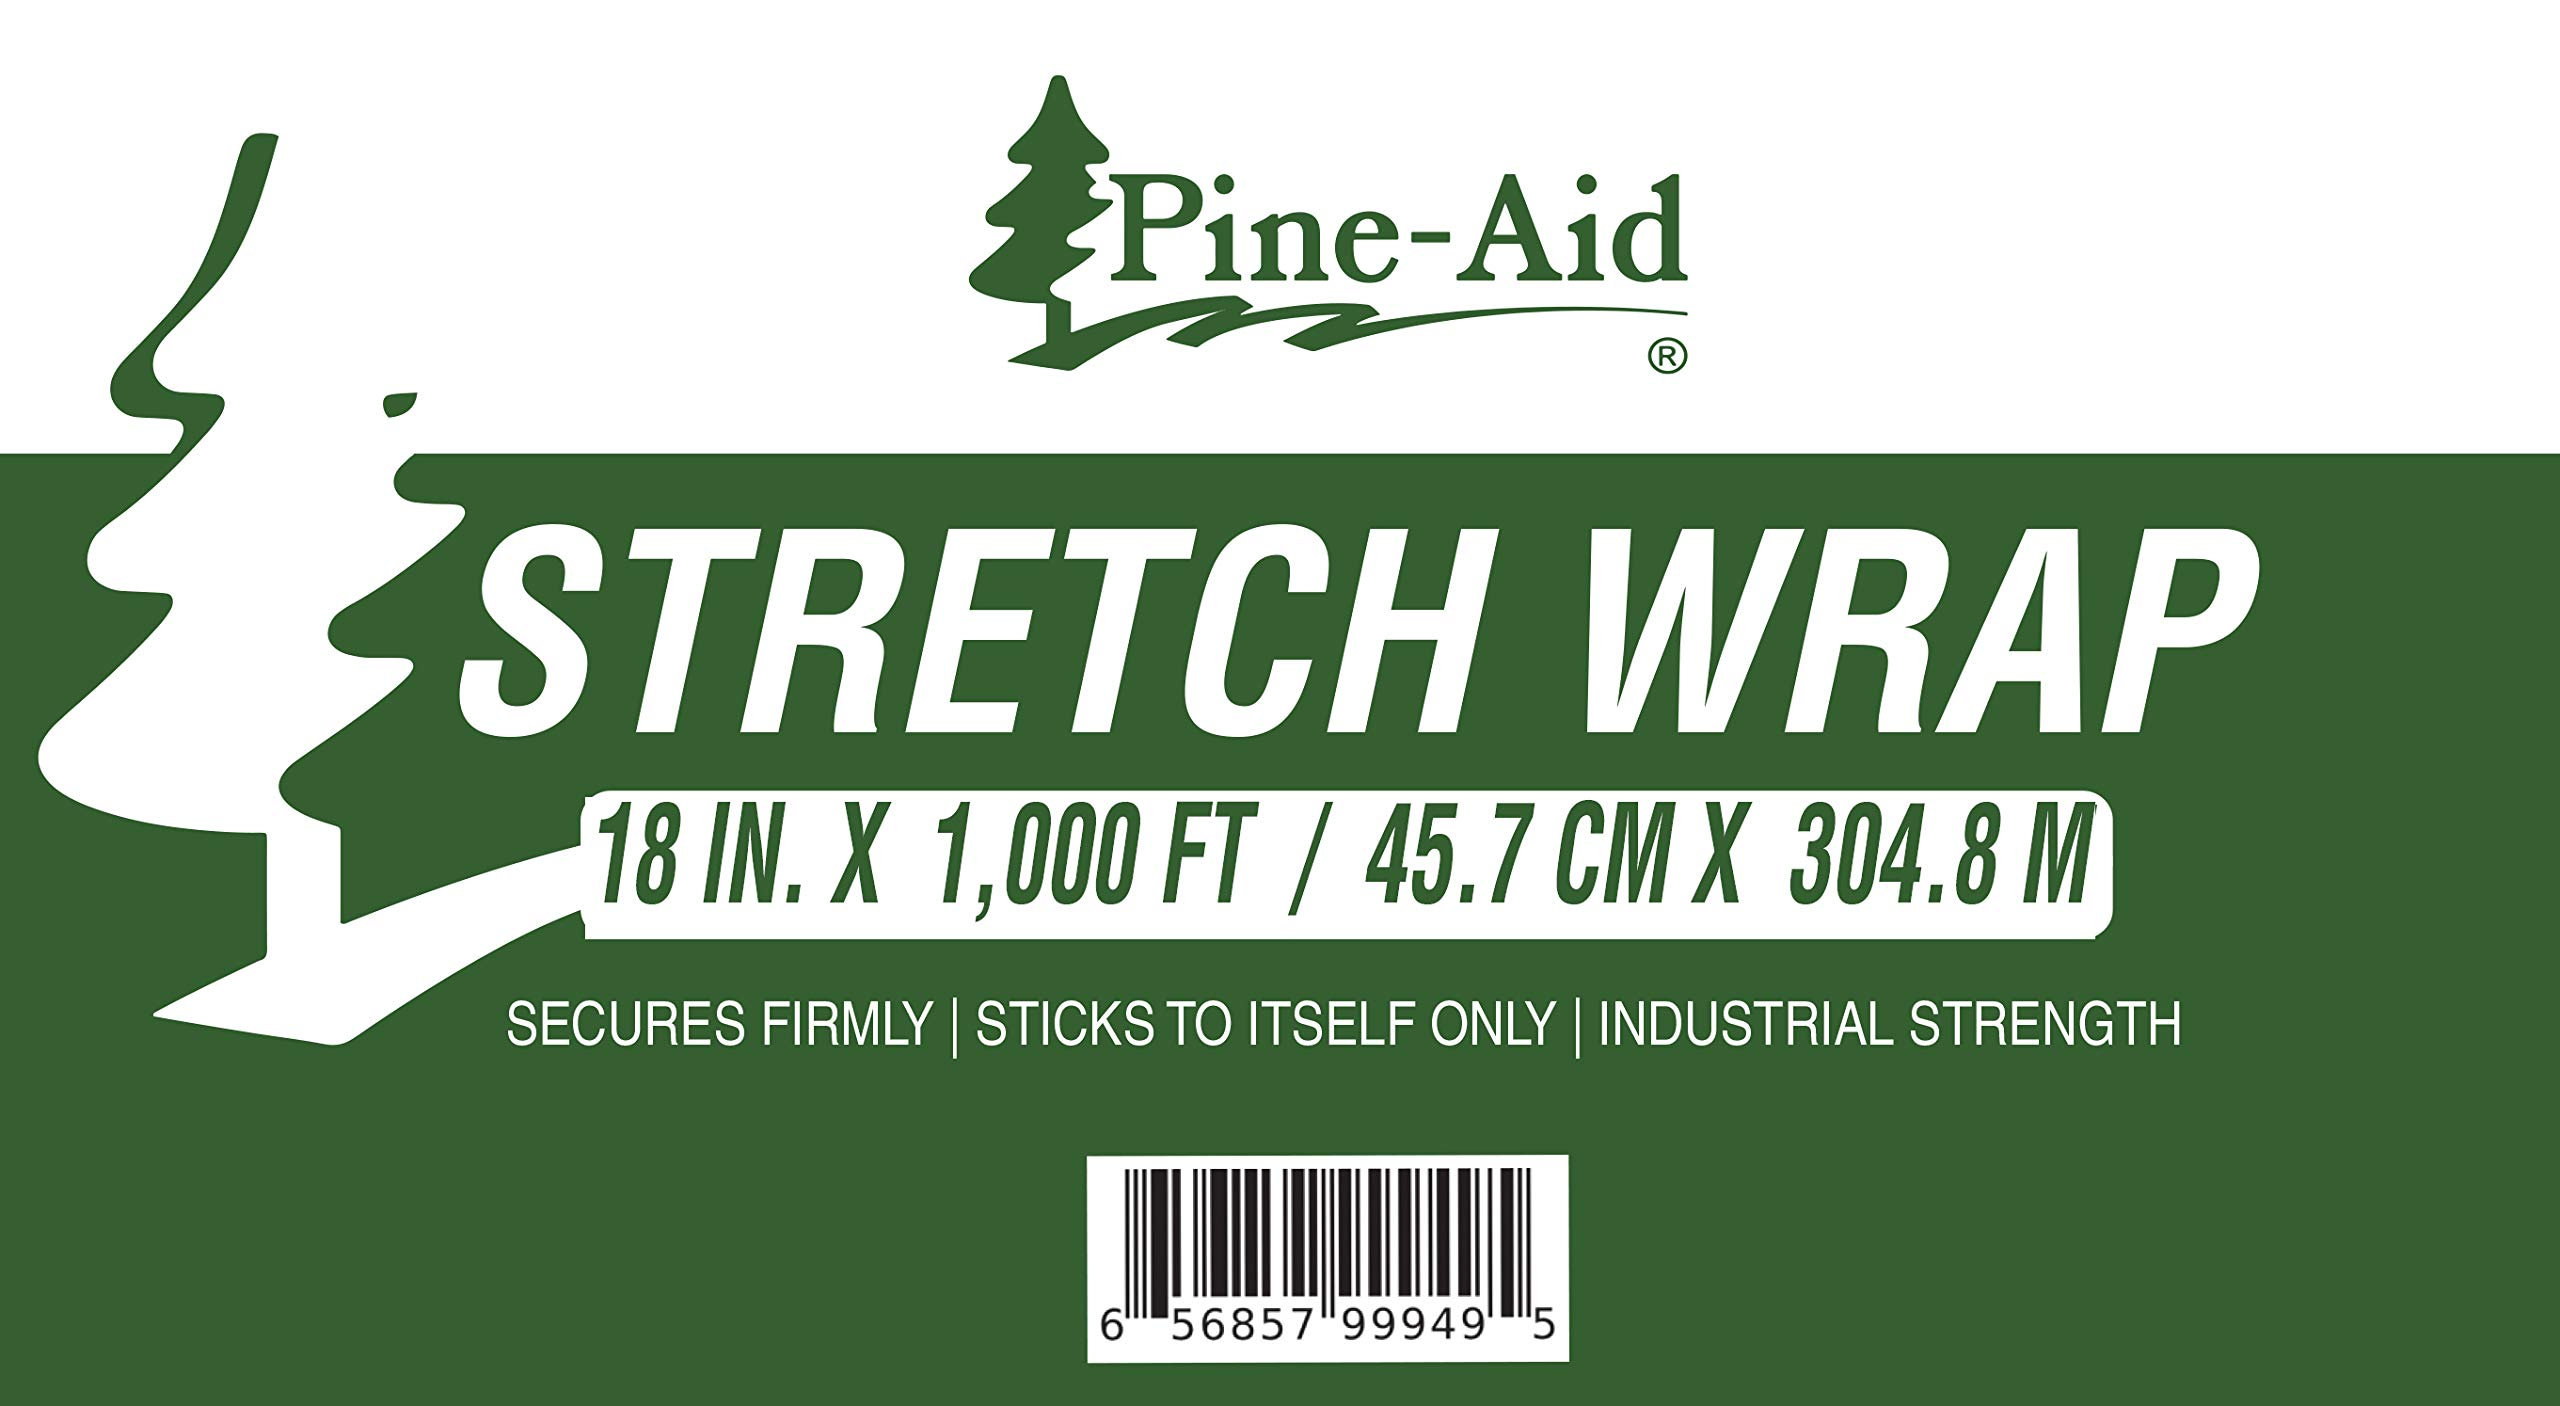 Stretch Wrap - 18'' X 1000 Sq Ft X 80 Gauge (20 Microns) Industrial Strength Thick & Most Durable, Self-Adhesive Film - Cling/Shrink/Pallet Wrap Best for Packing and Moving (4) by Pine-Aid (Image #2)